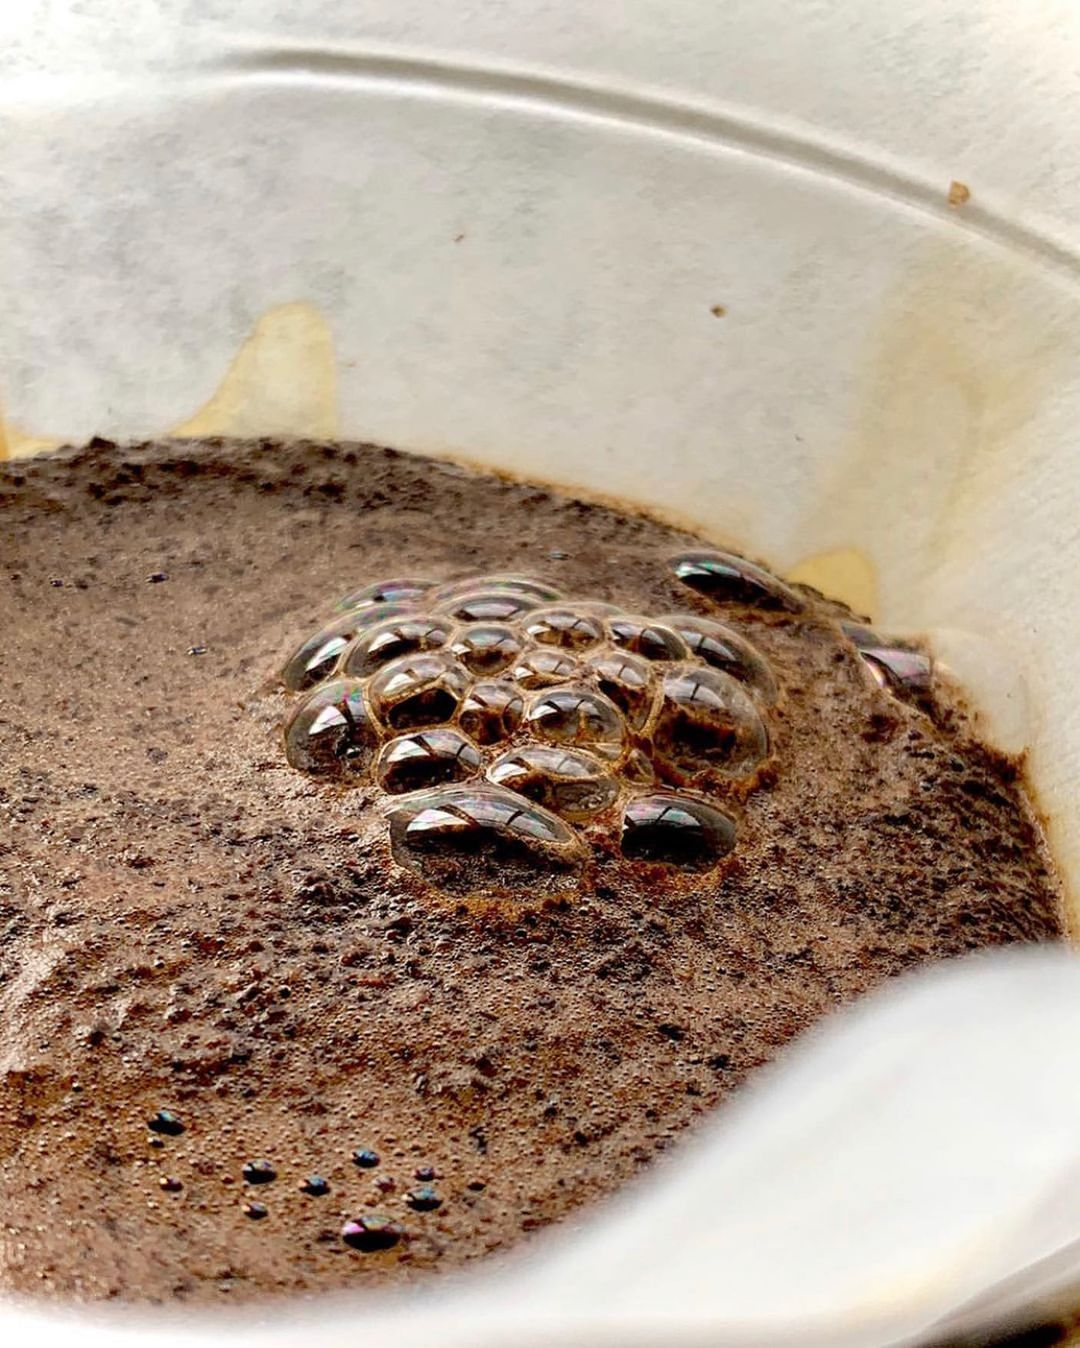 tight shot of coffee with bubbles as it is brewing